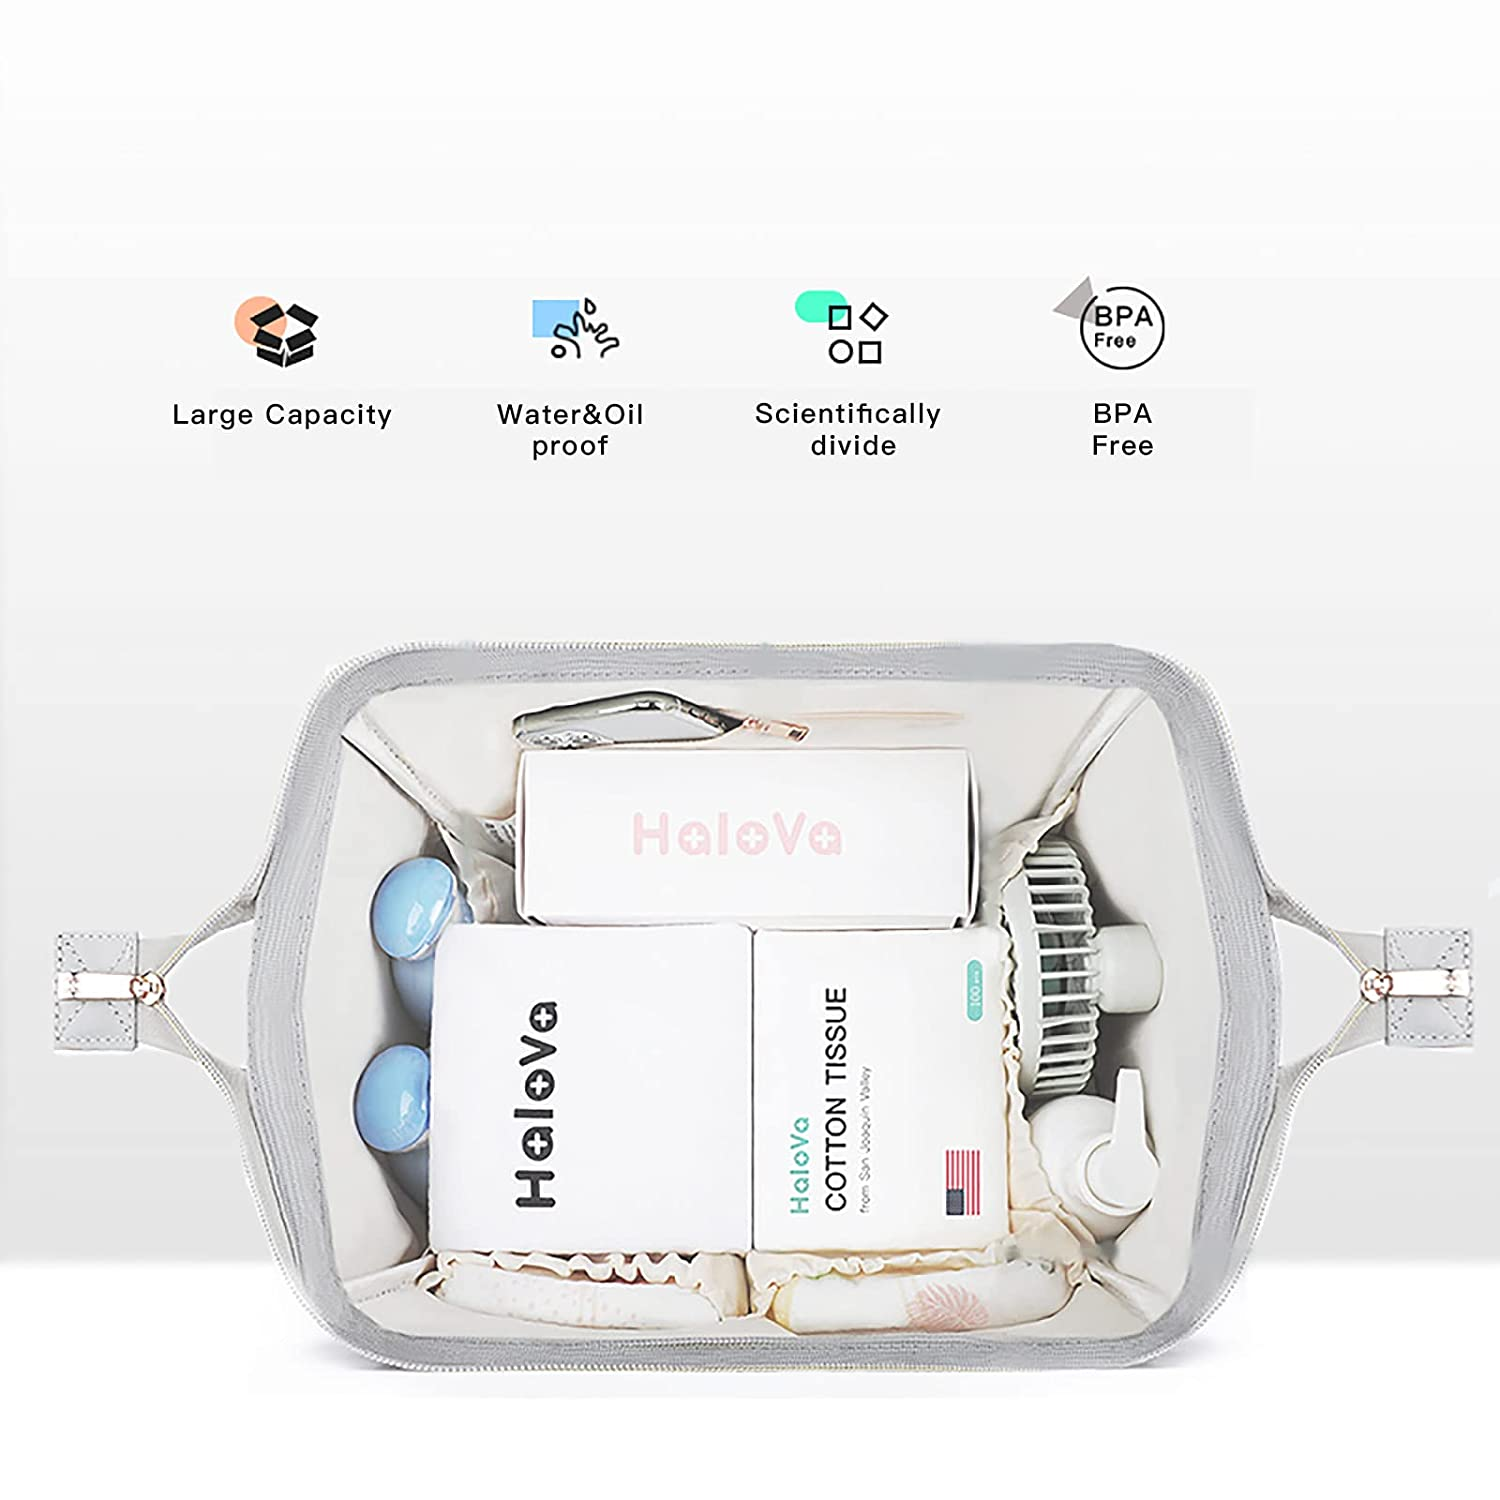 HaloVa Diaper Bag Multi-Function Waterproof Travel Backpack Nappy Bags for Baby Care, Large Capacity, Stylish and Durable, Black